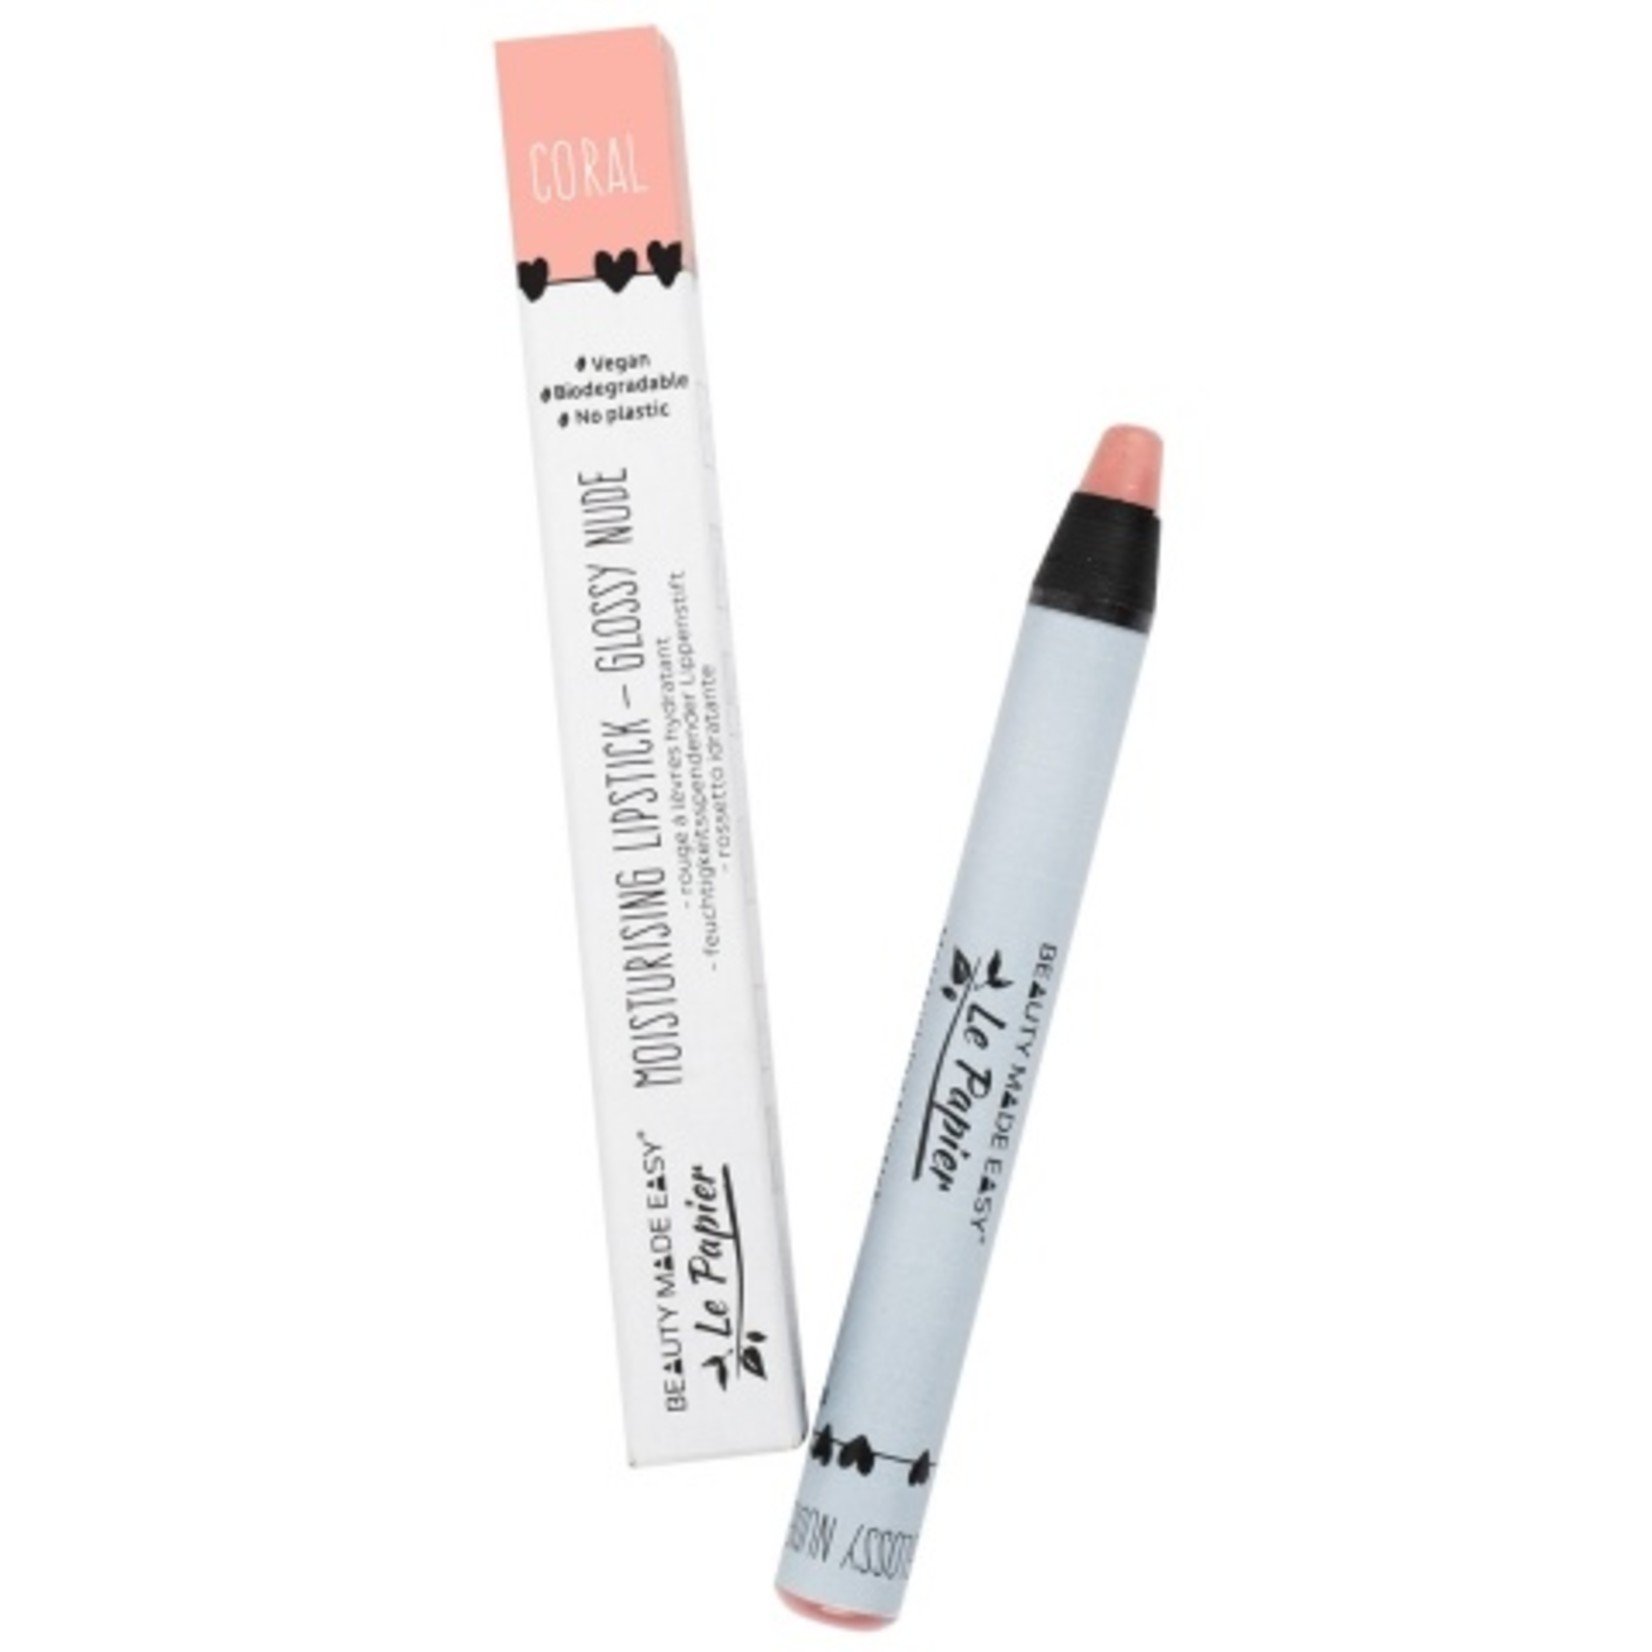 Voedende lipstick - Glossy Nudes - CORAL - 6 g